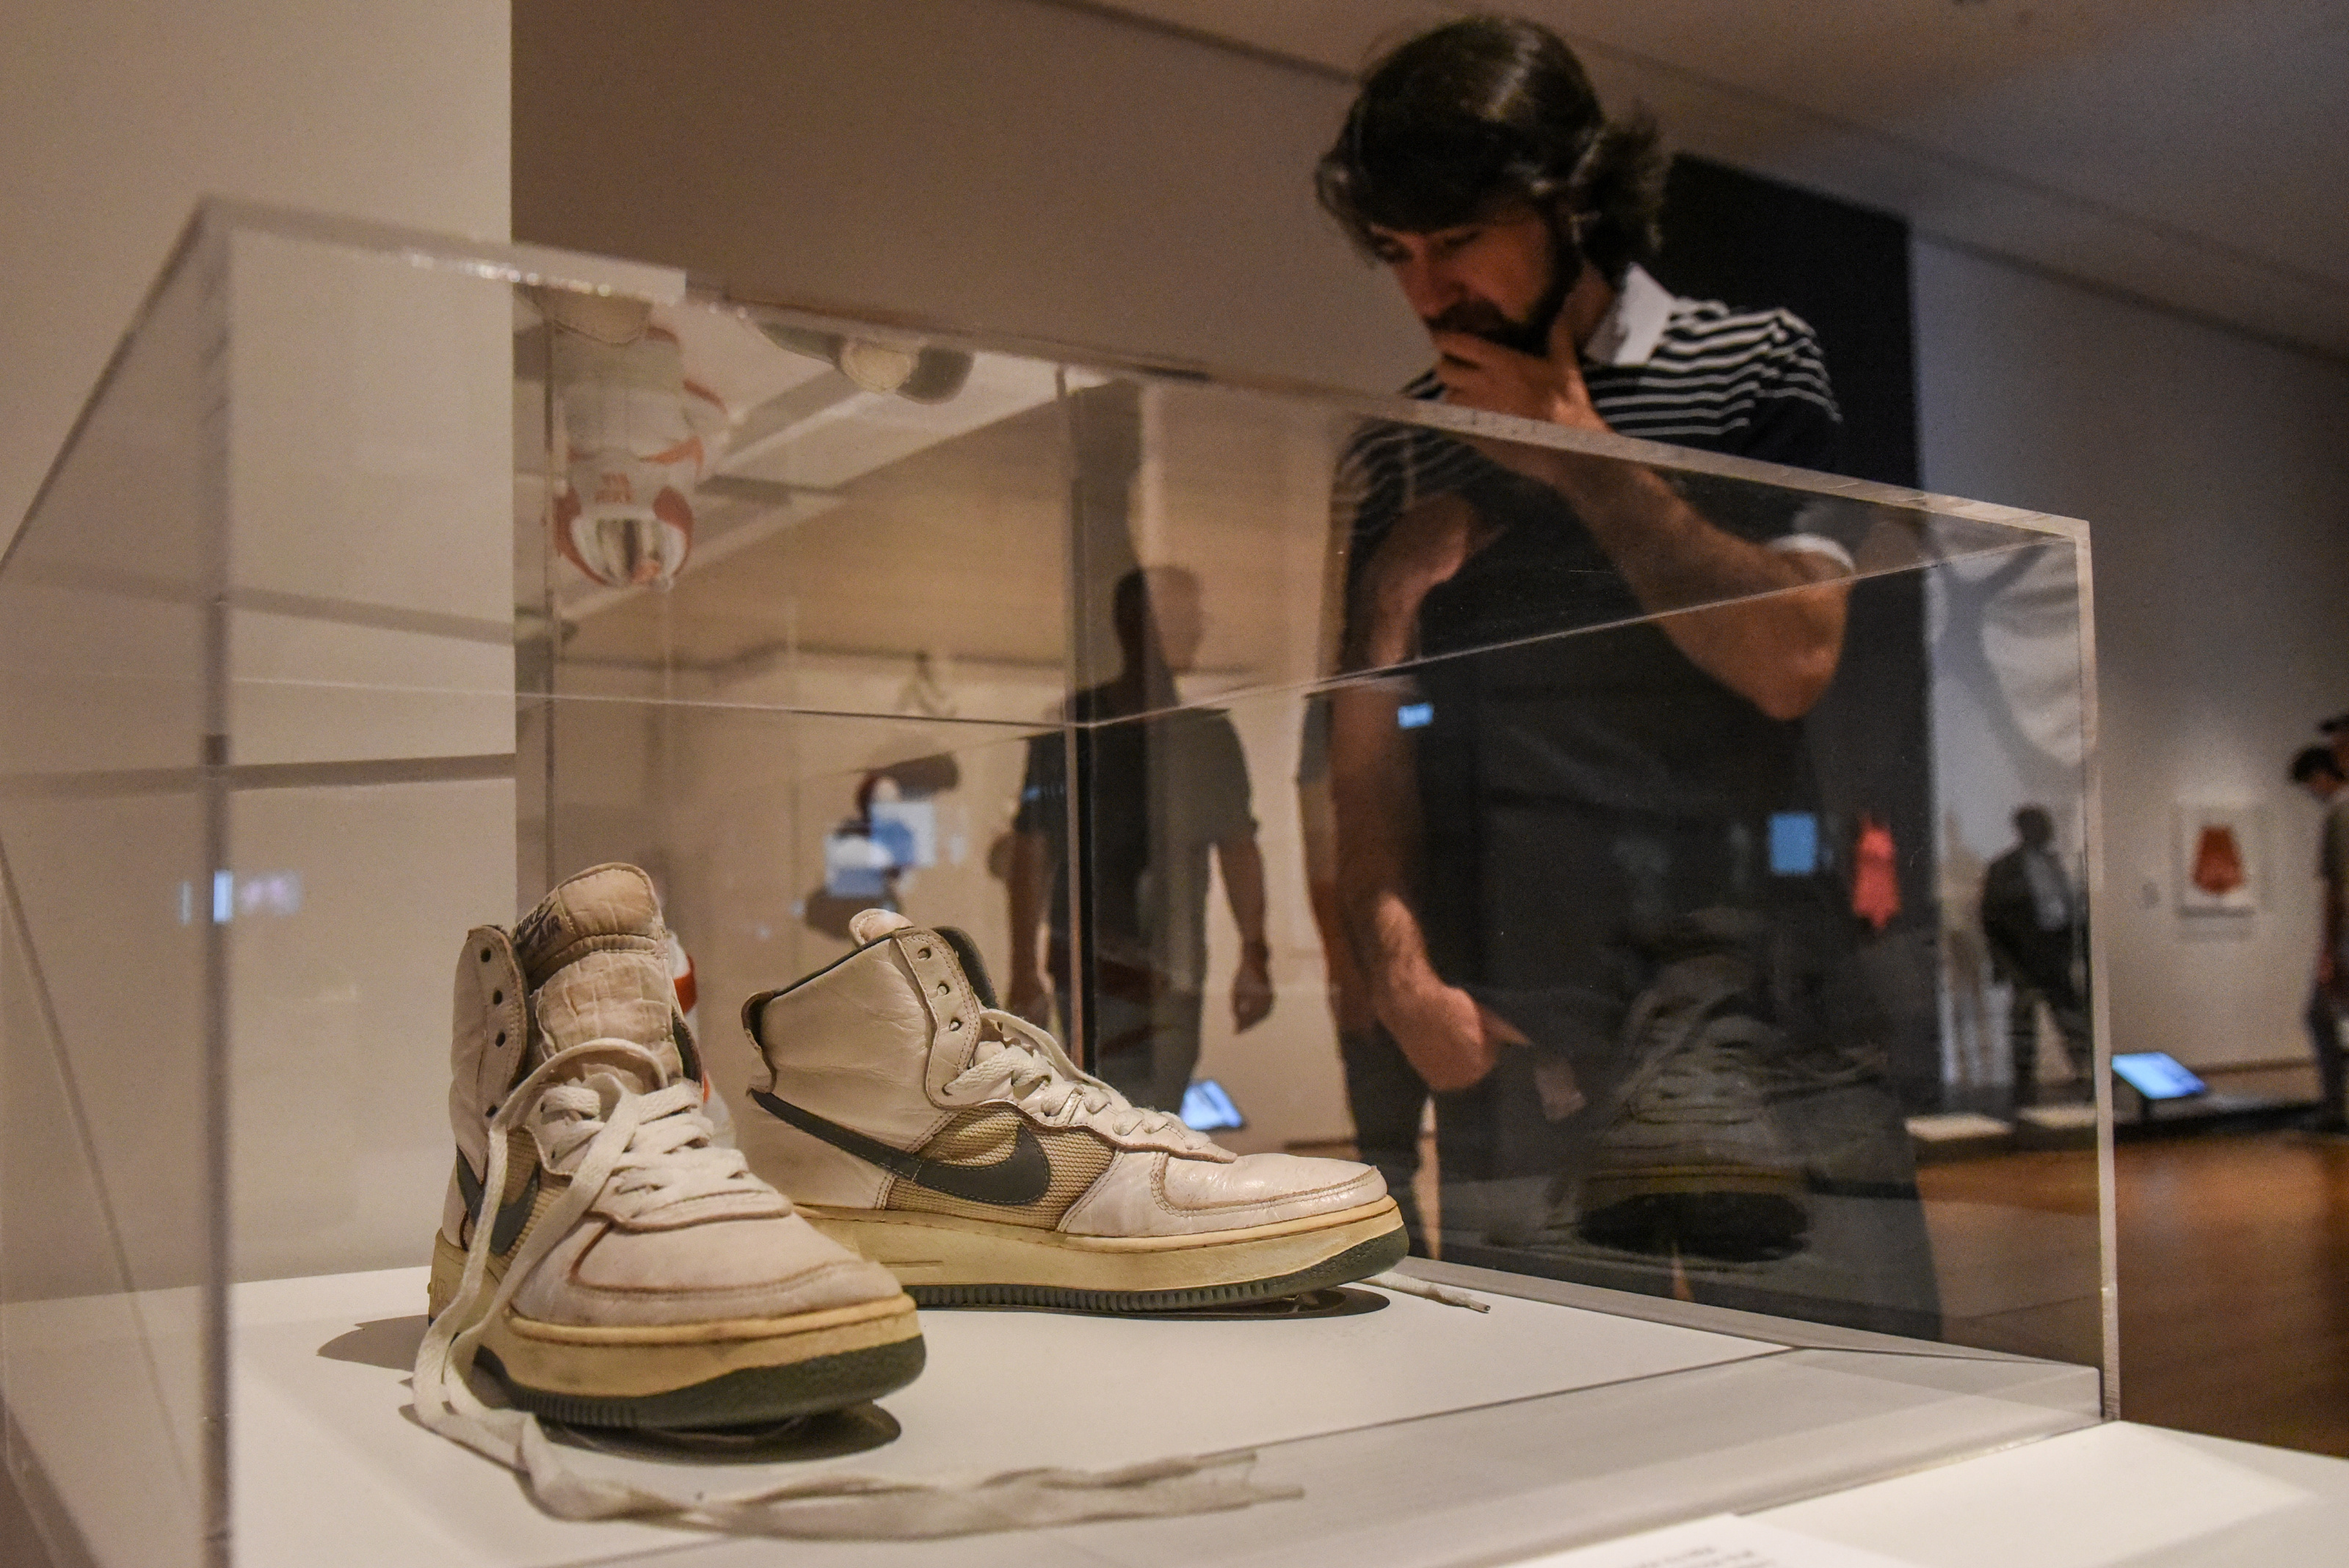 A person looks at a pair of sneakers on display at the Museum of Modern Art's exhibition called Items: Is Fashion Modern? in New York City, U.S. October 6, 2017. REUTERS/Stephanie Keith - RC1B5B88F7D0